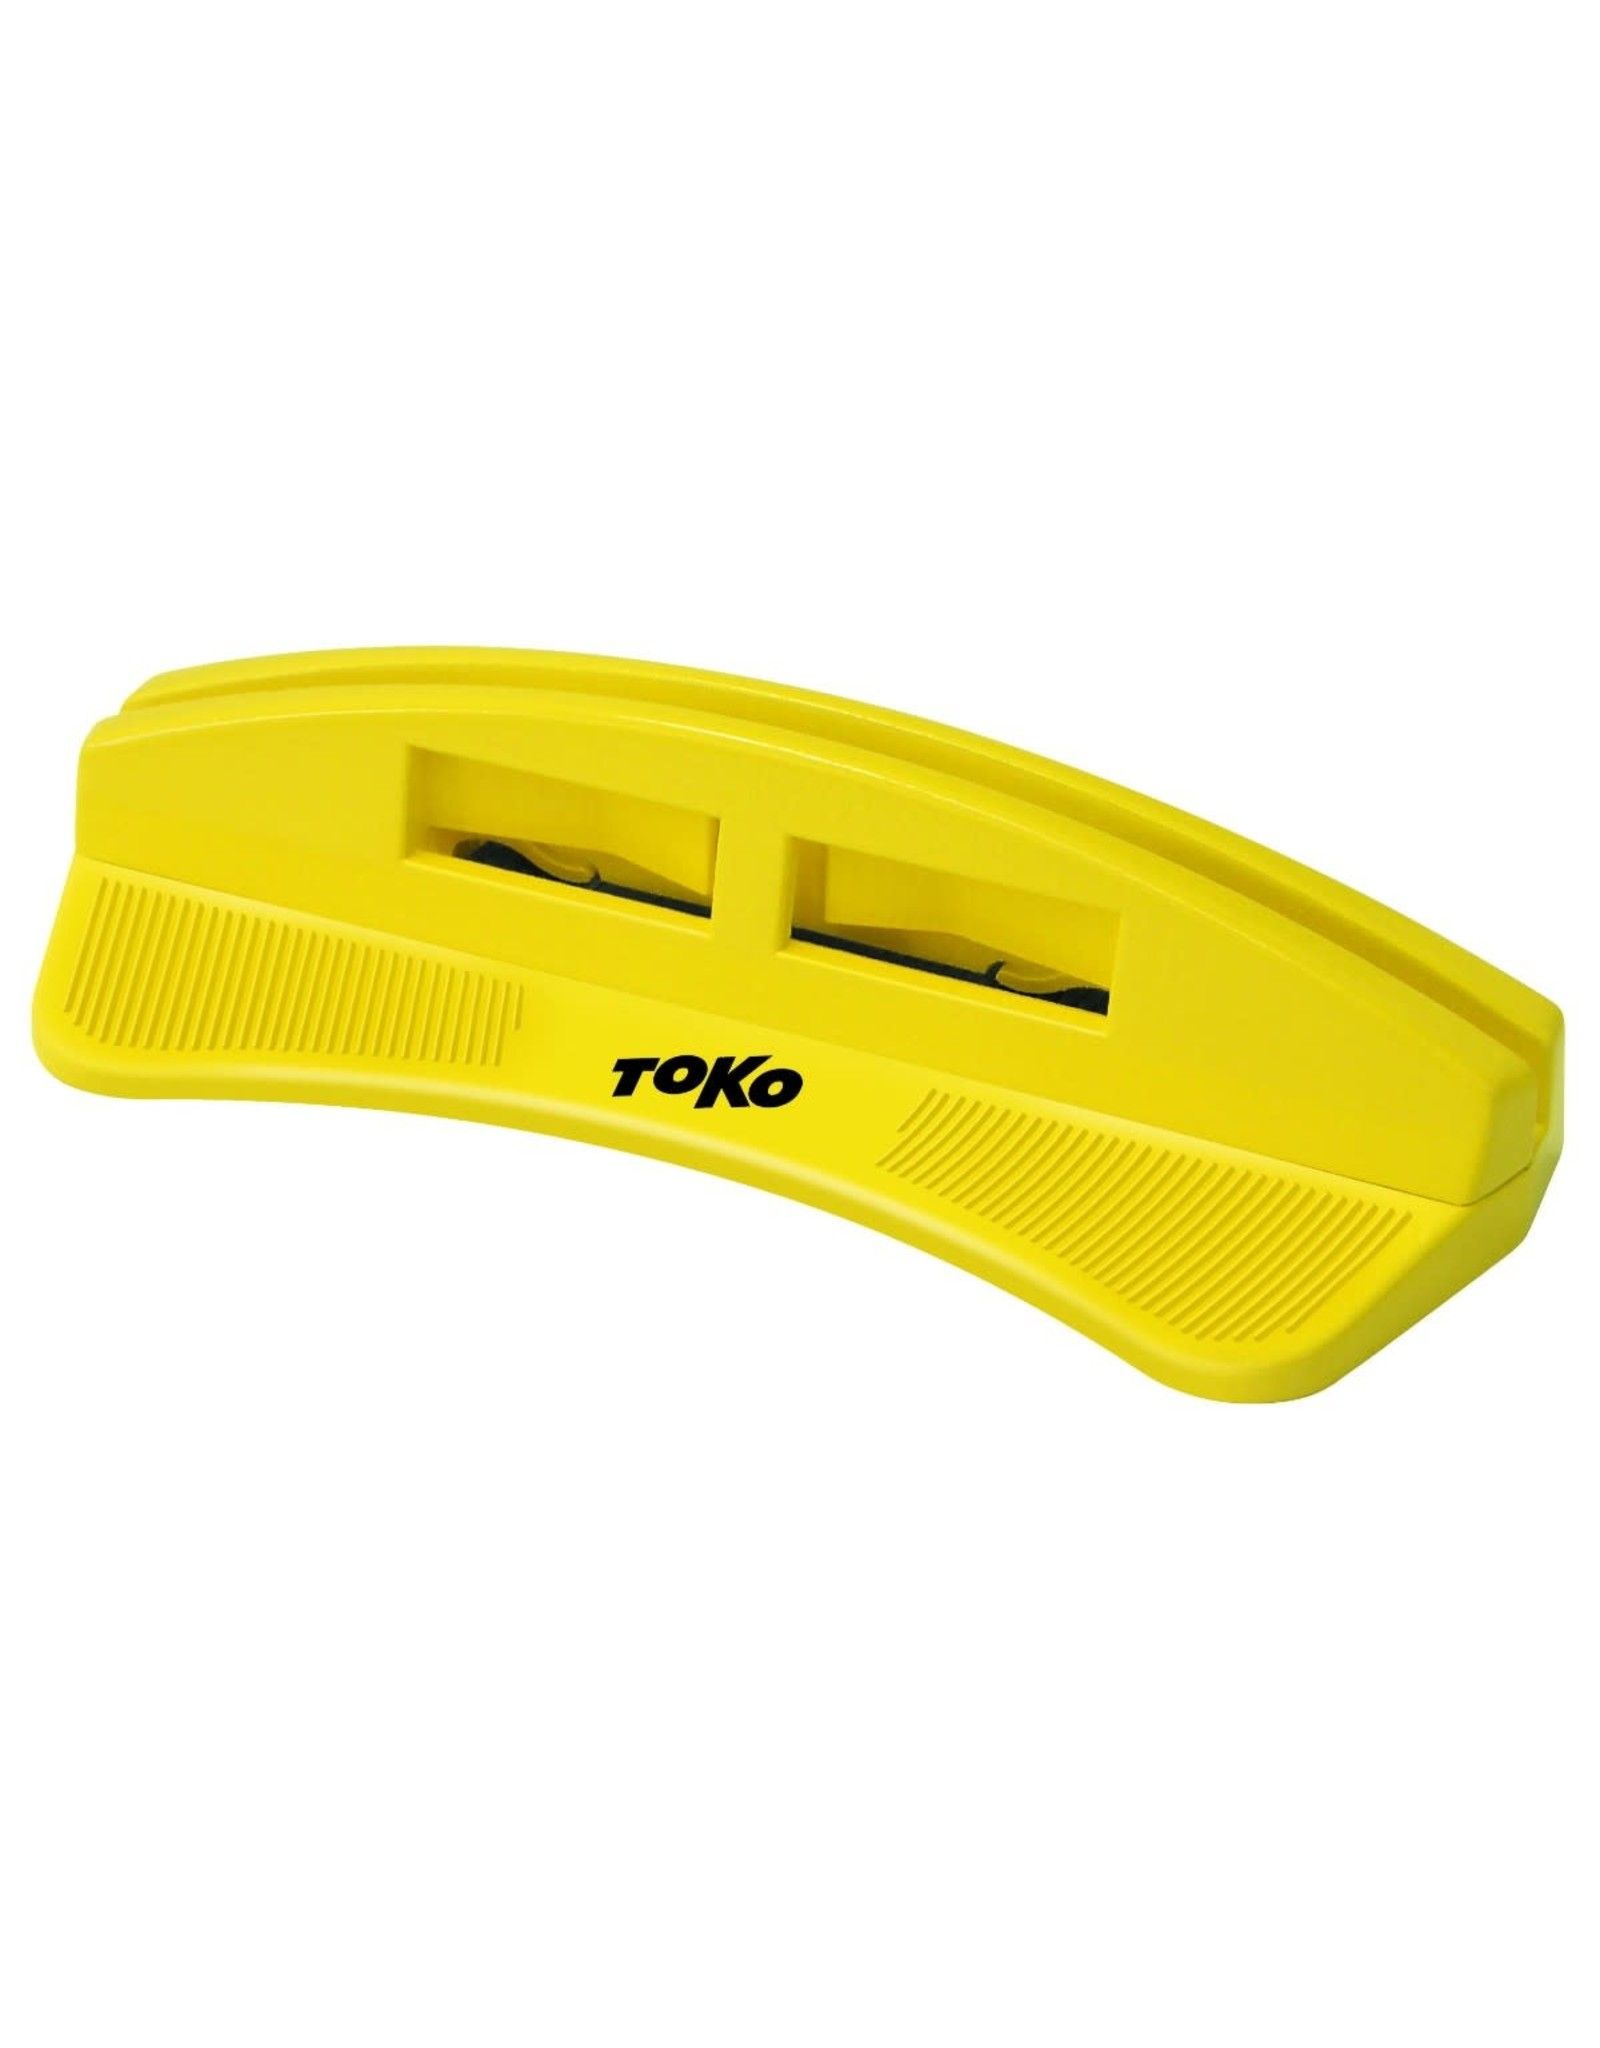 Toko Toko Scraper Sharpener World Cup